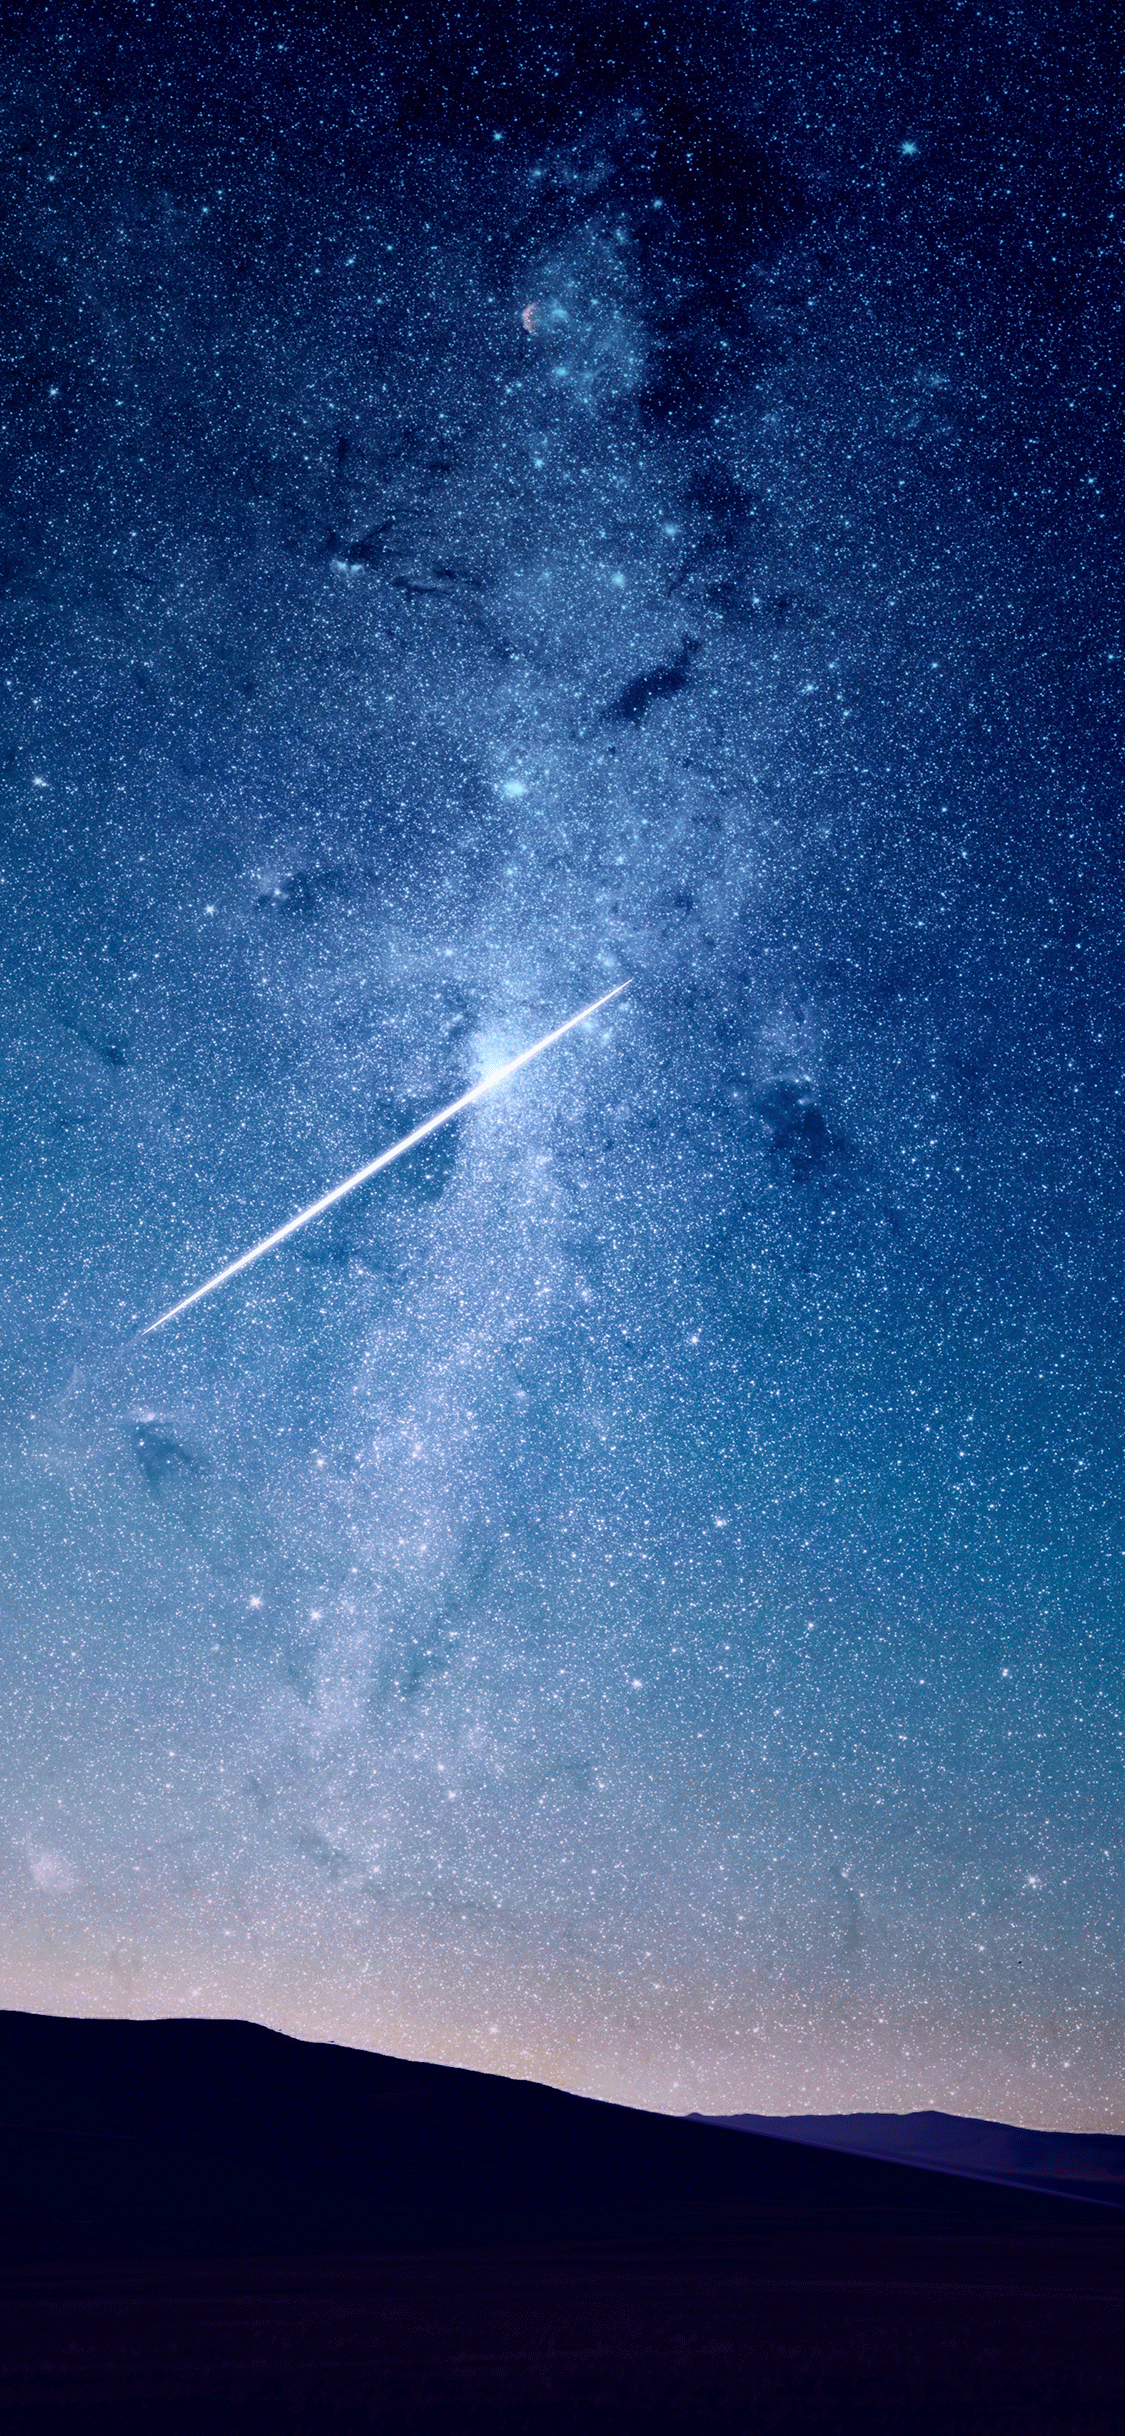 iPhone wallpaper shooting star blue Fonds d'écran iPhone du 07/08/2018